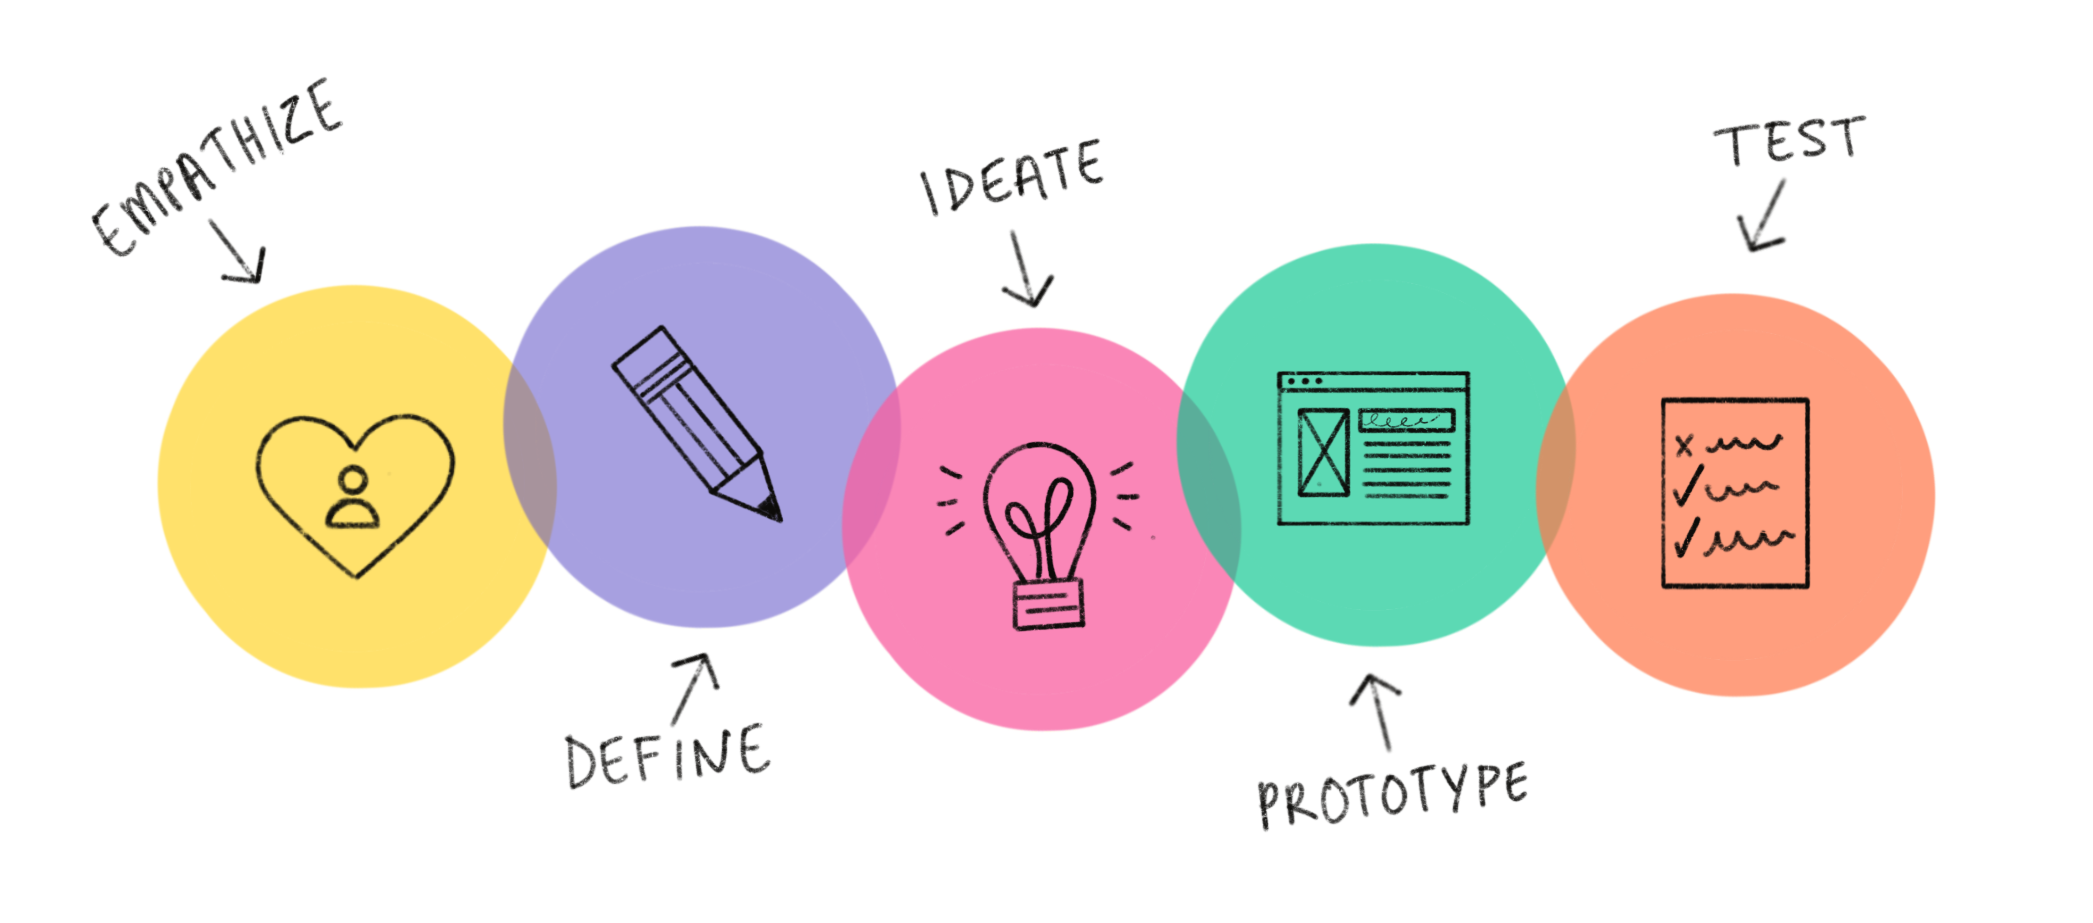 How I Scaled a SlideShare Post into an Online Store Using Design Thinking